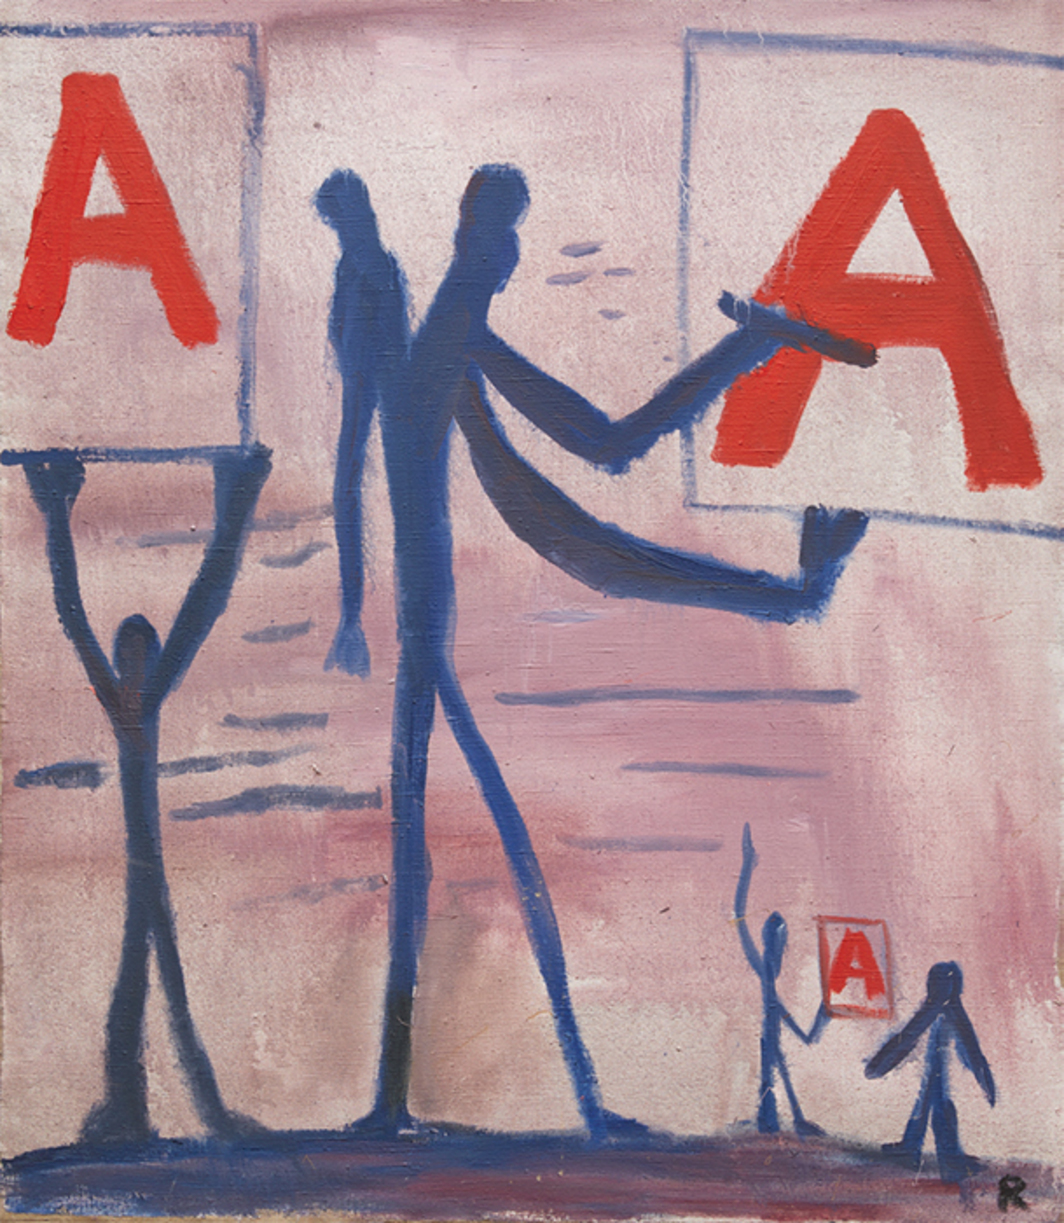 "A. R. Penck, Untitled (System Painting), 1966, oil on canvas, 42 3/4 × 37 1/2"". © Artists Rights Society (ARS), New York / VG Bild-Kunst, Bonn."